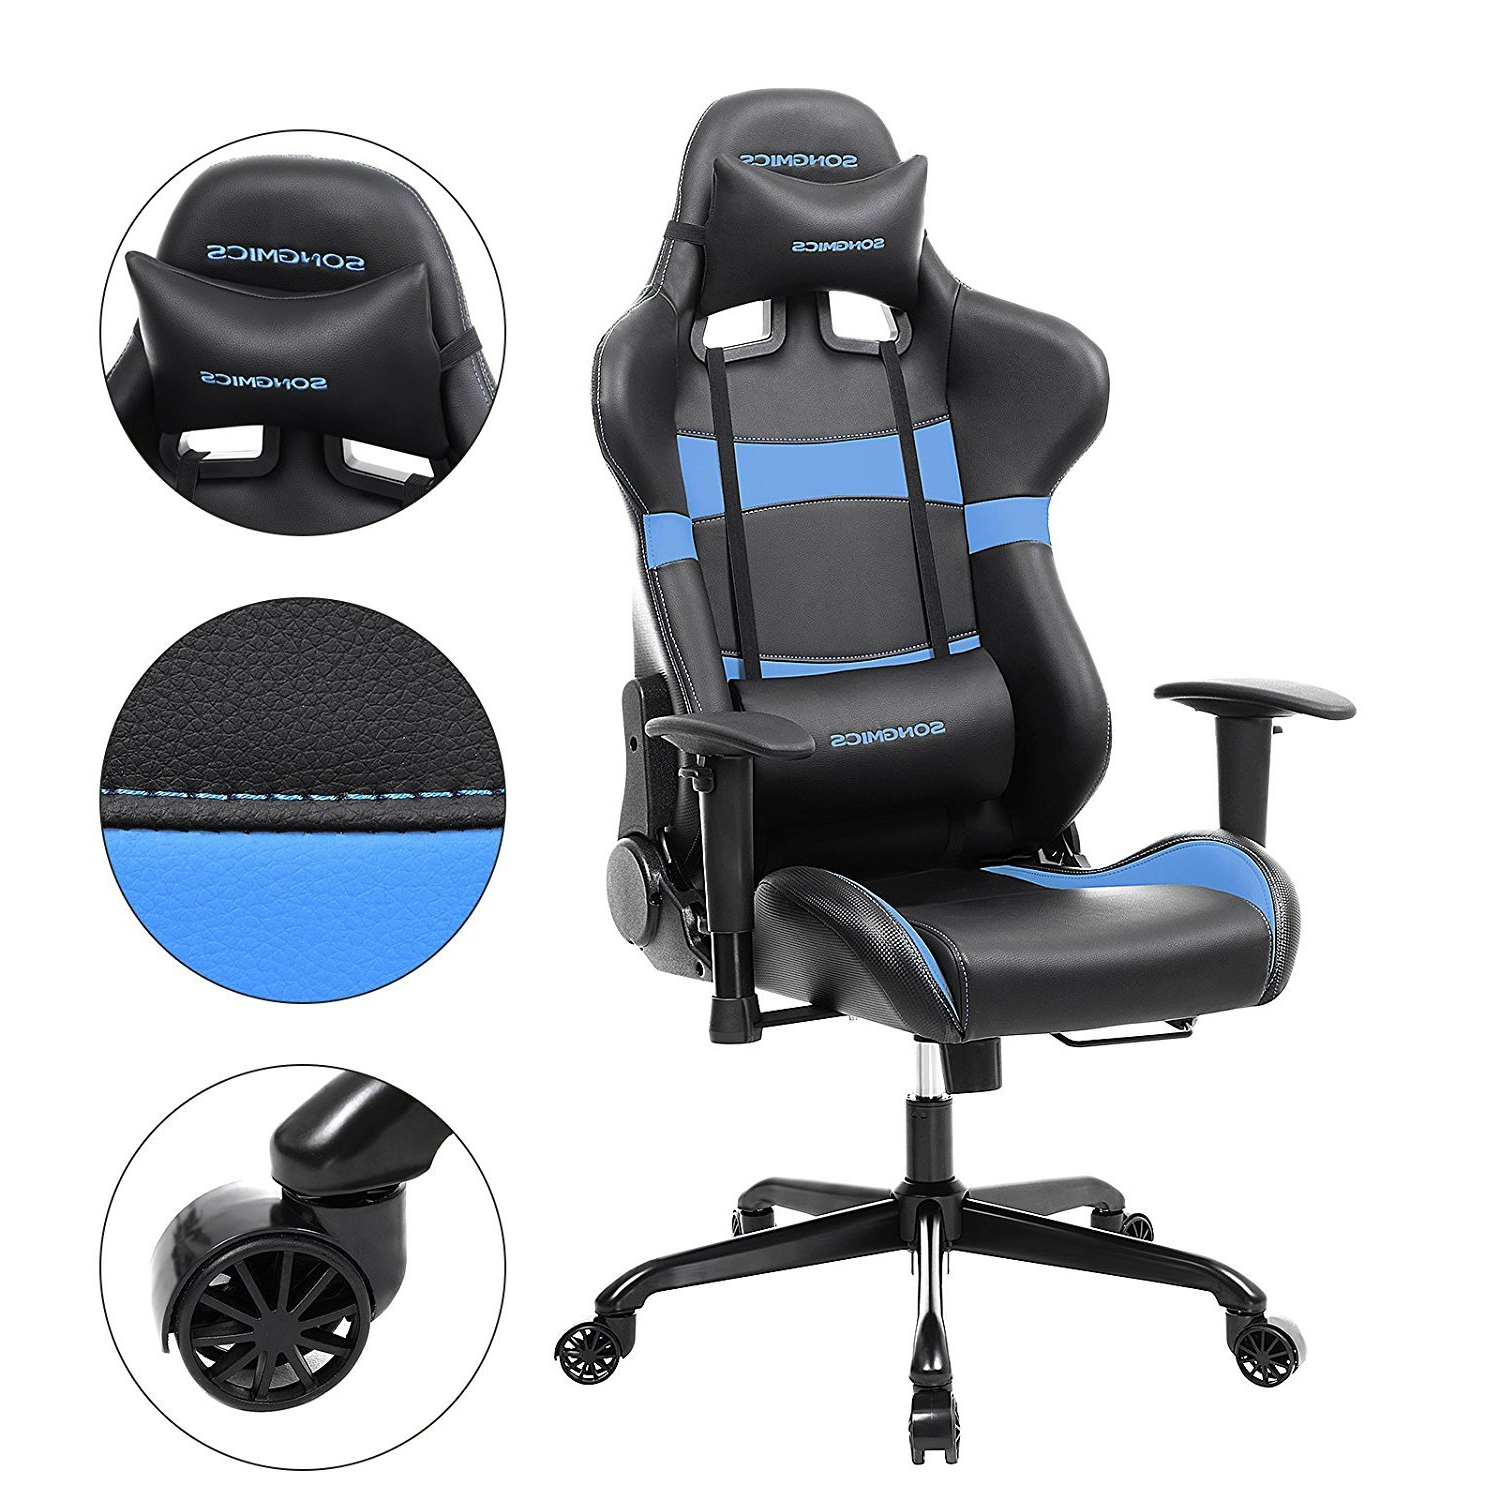 Songmics Silla Dddy Anà Lisis Review songmics Racing Silla Rcg22l